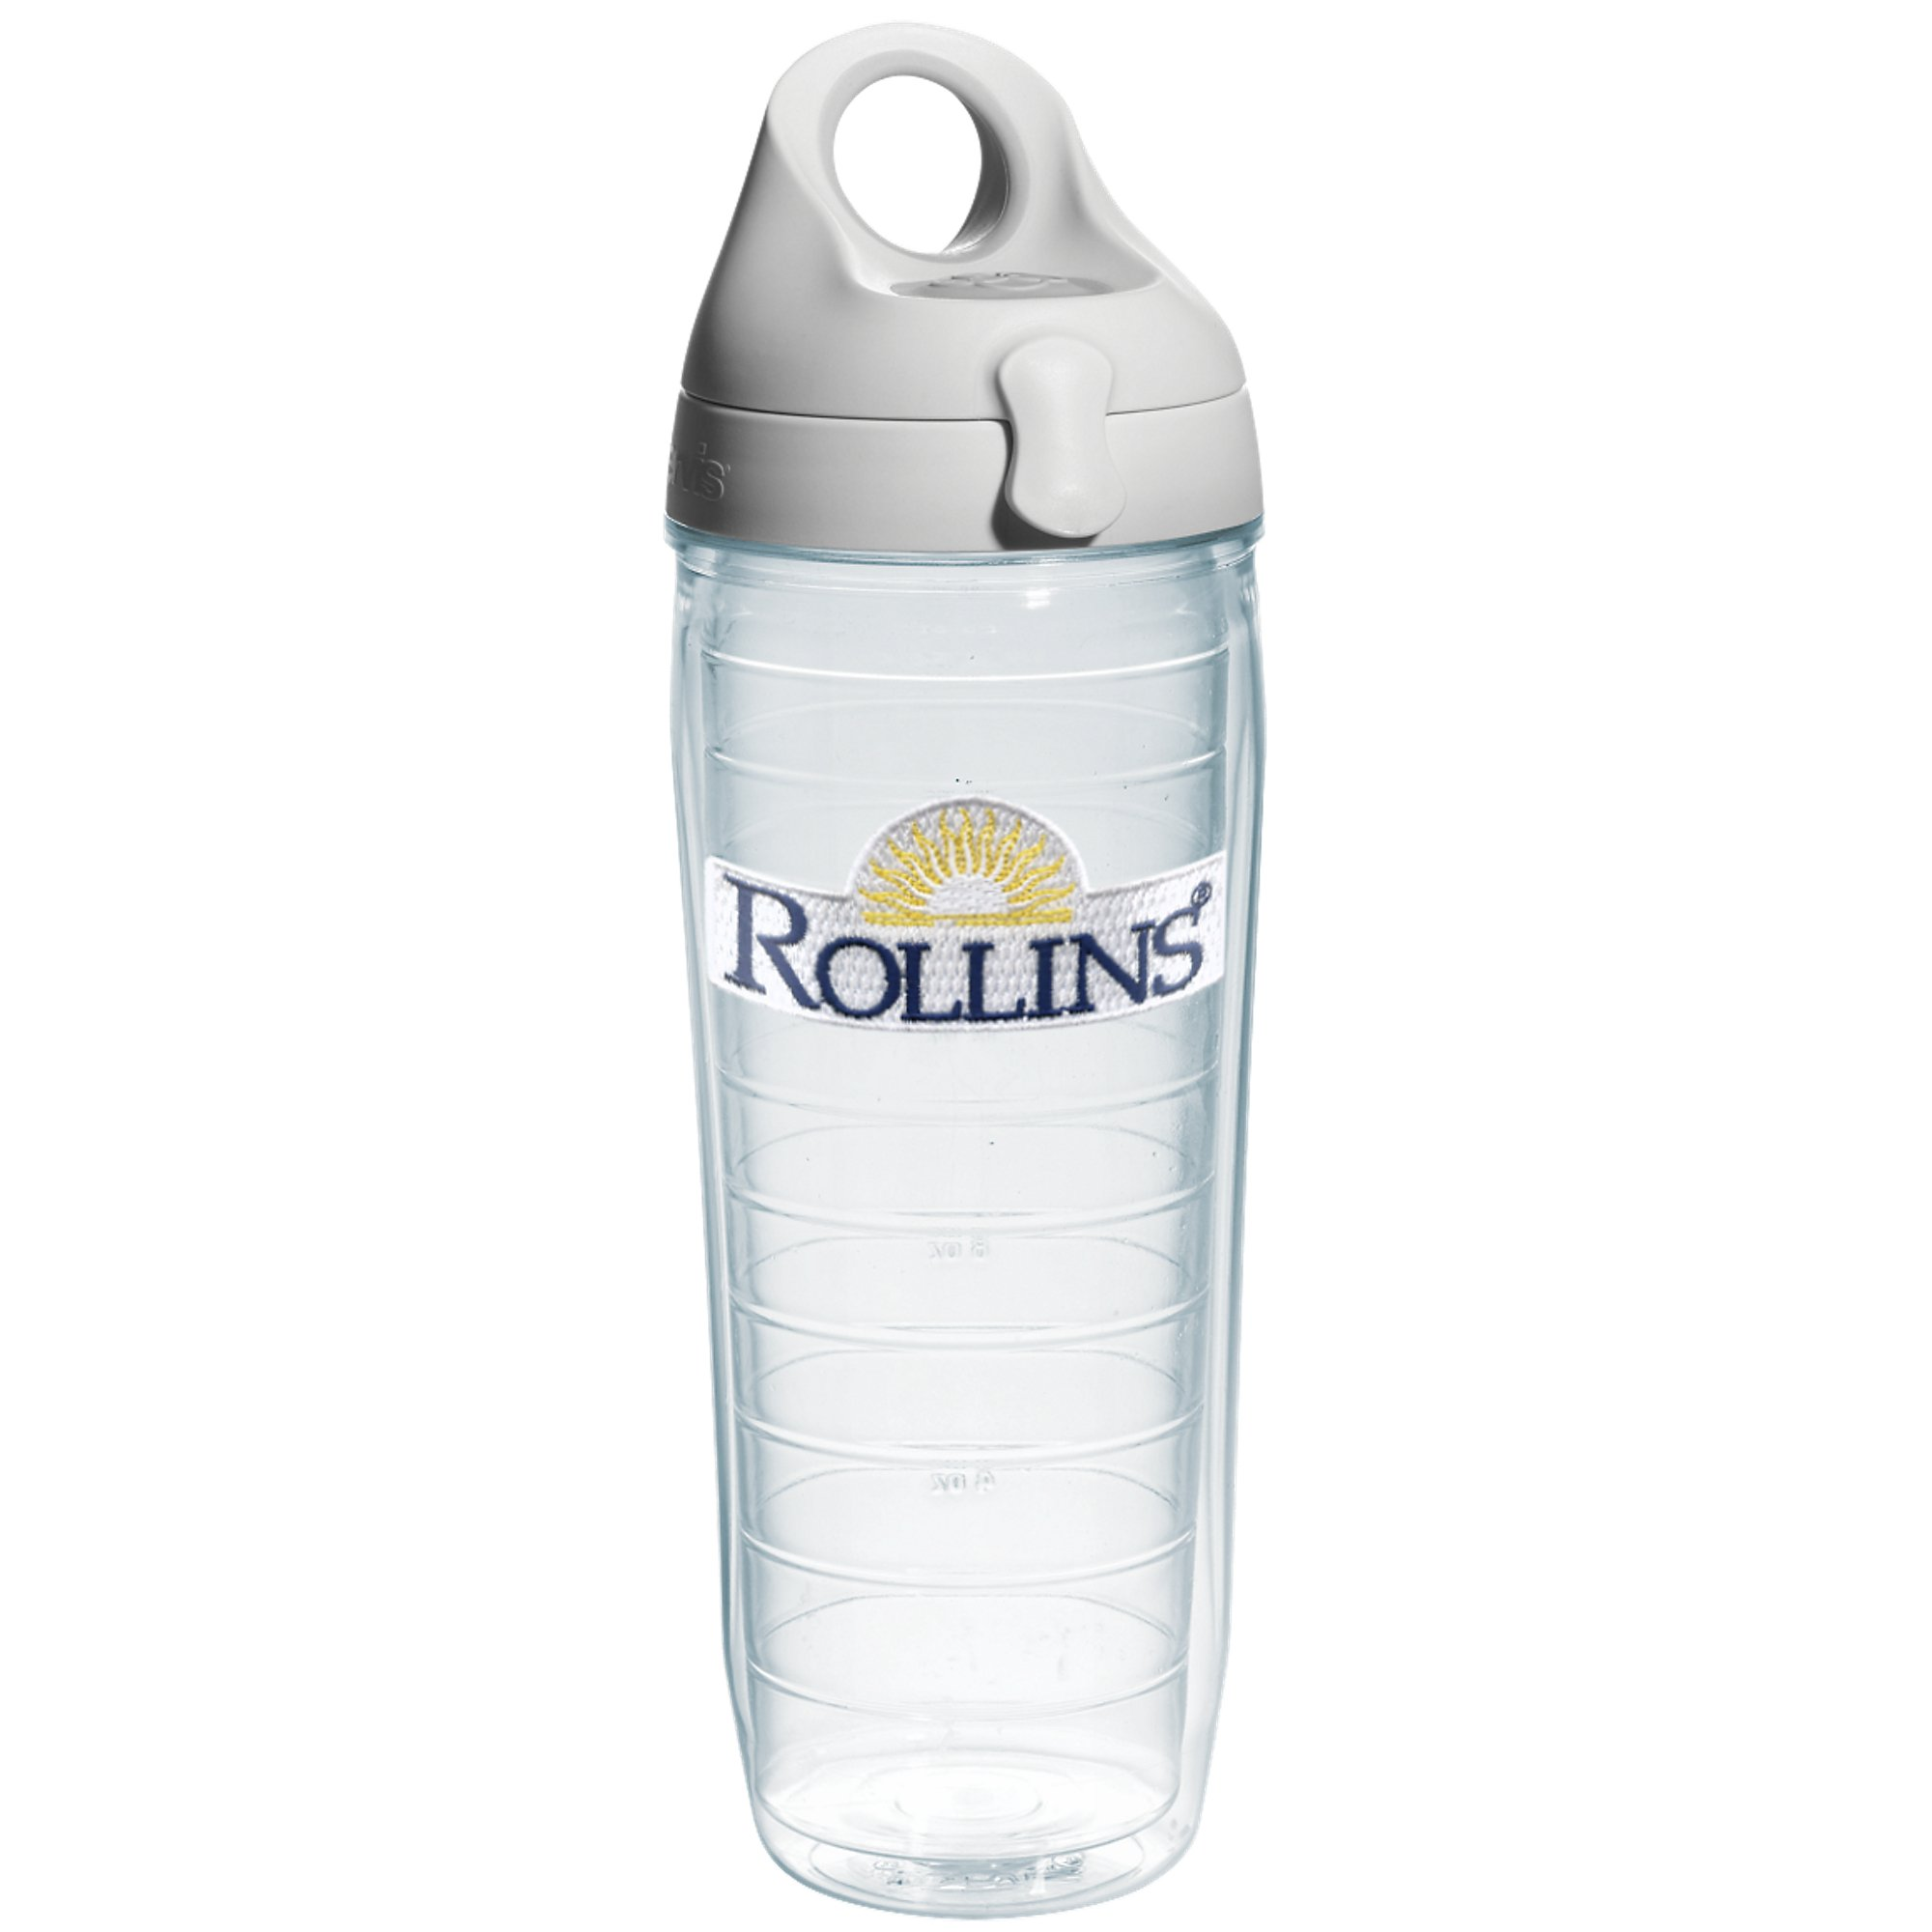 Tervis Rollins College Emblem Individual Water Bottle with Gray Lid, 24 oz, Clear